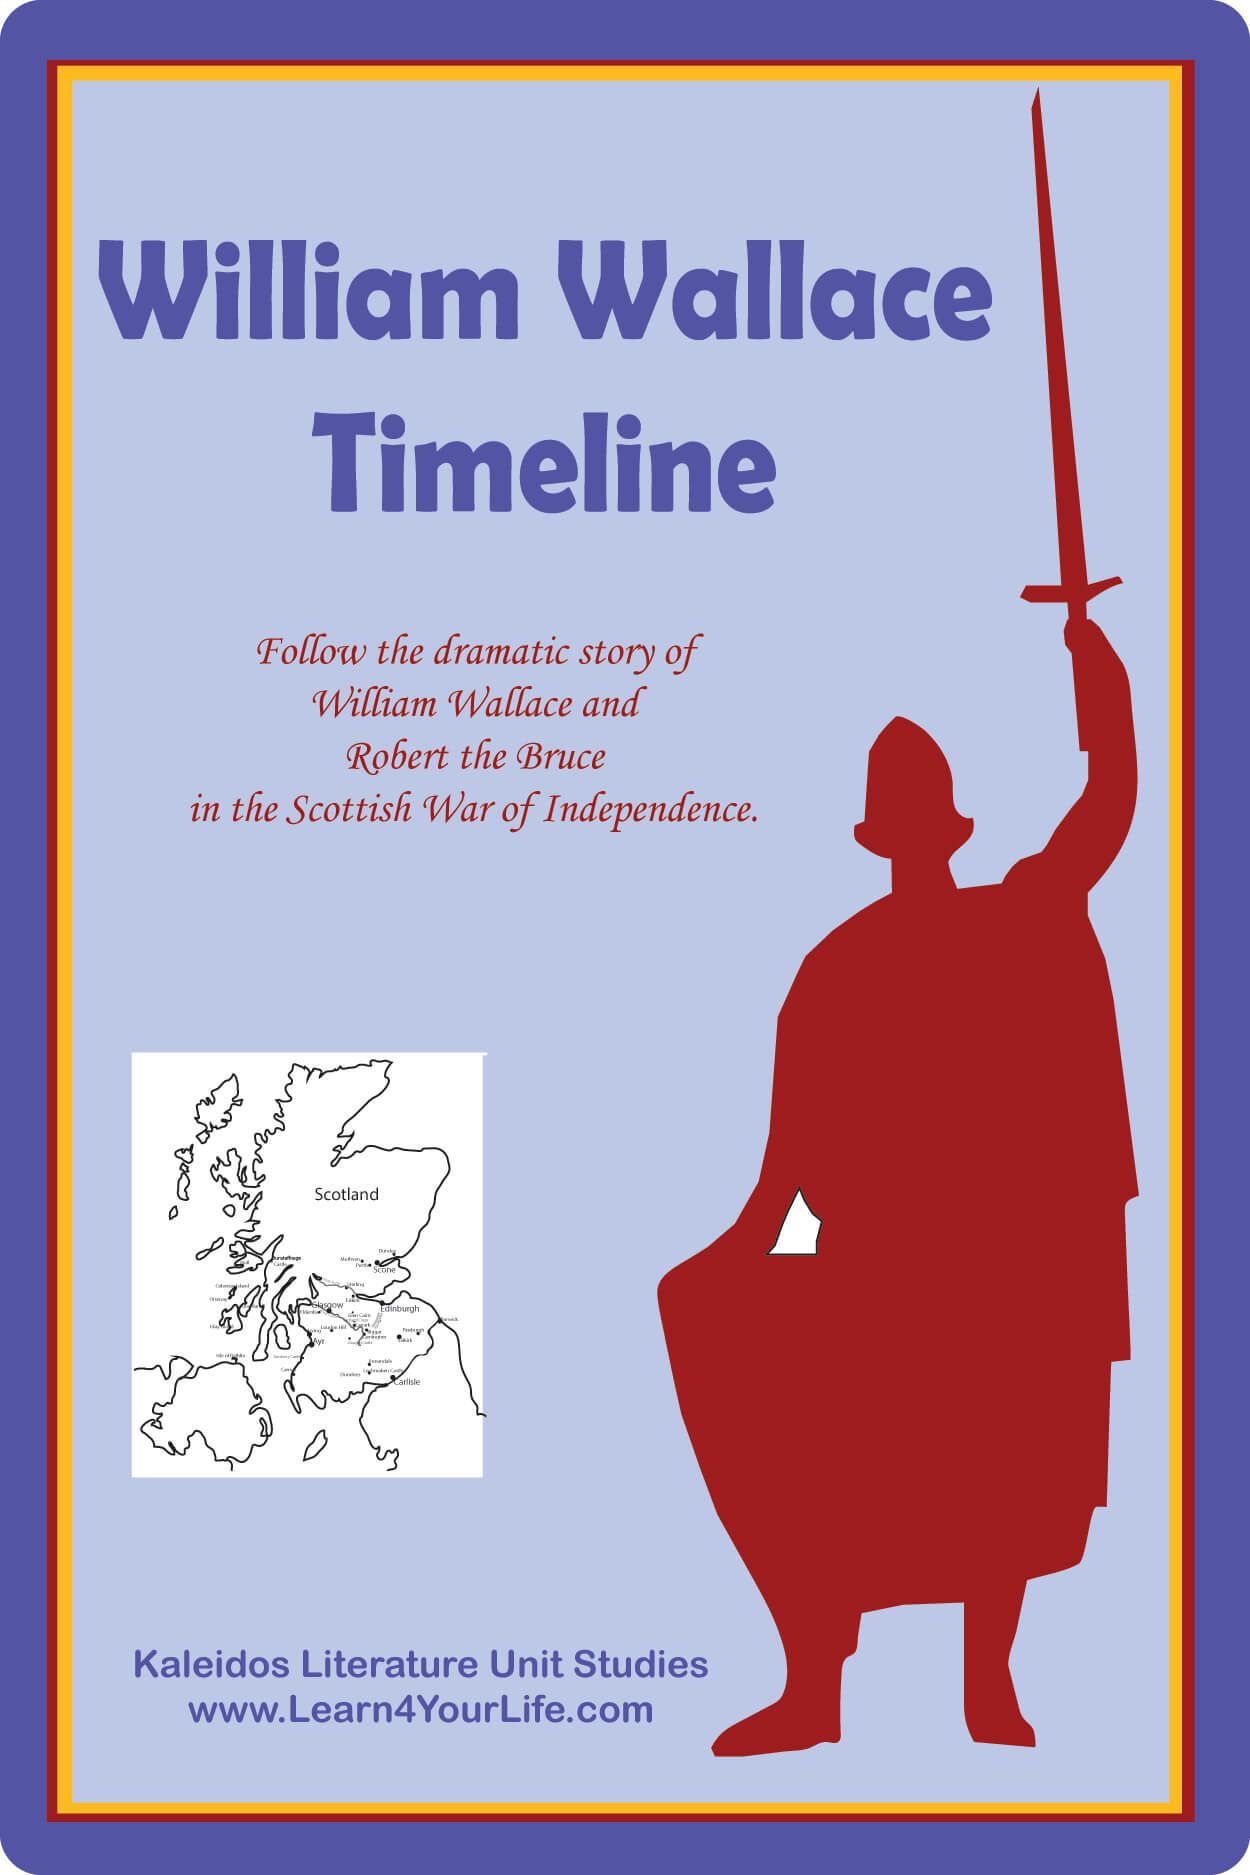 William Wallace Timeline With Images